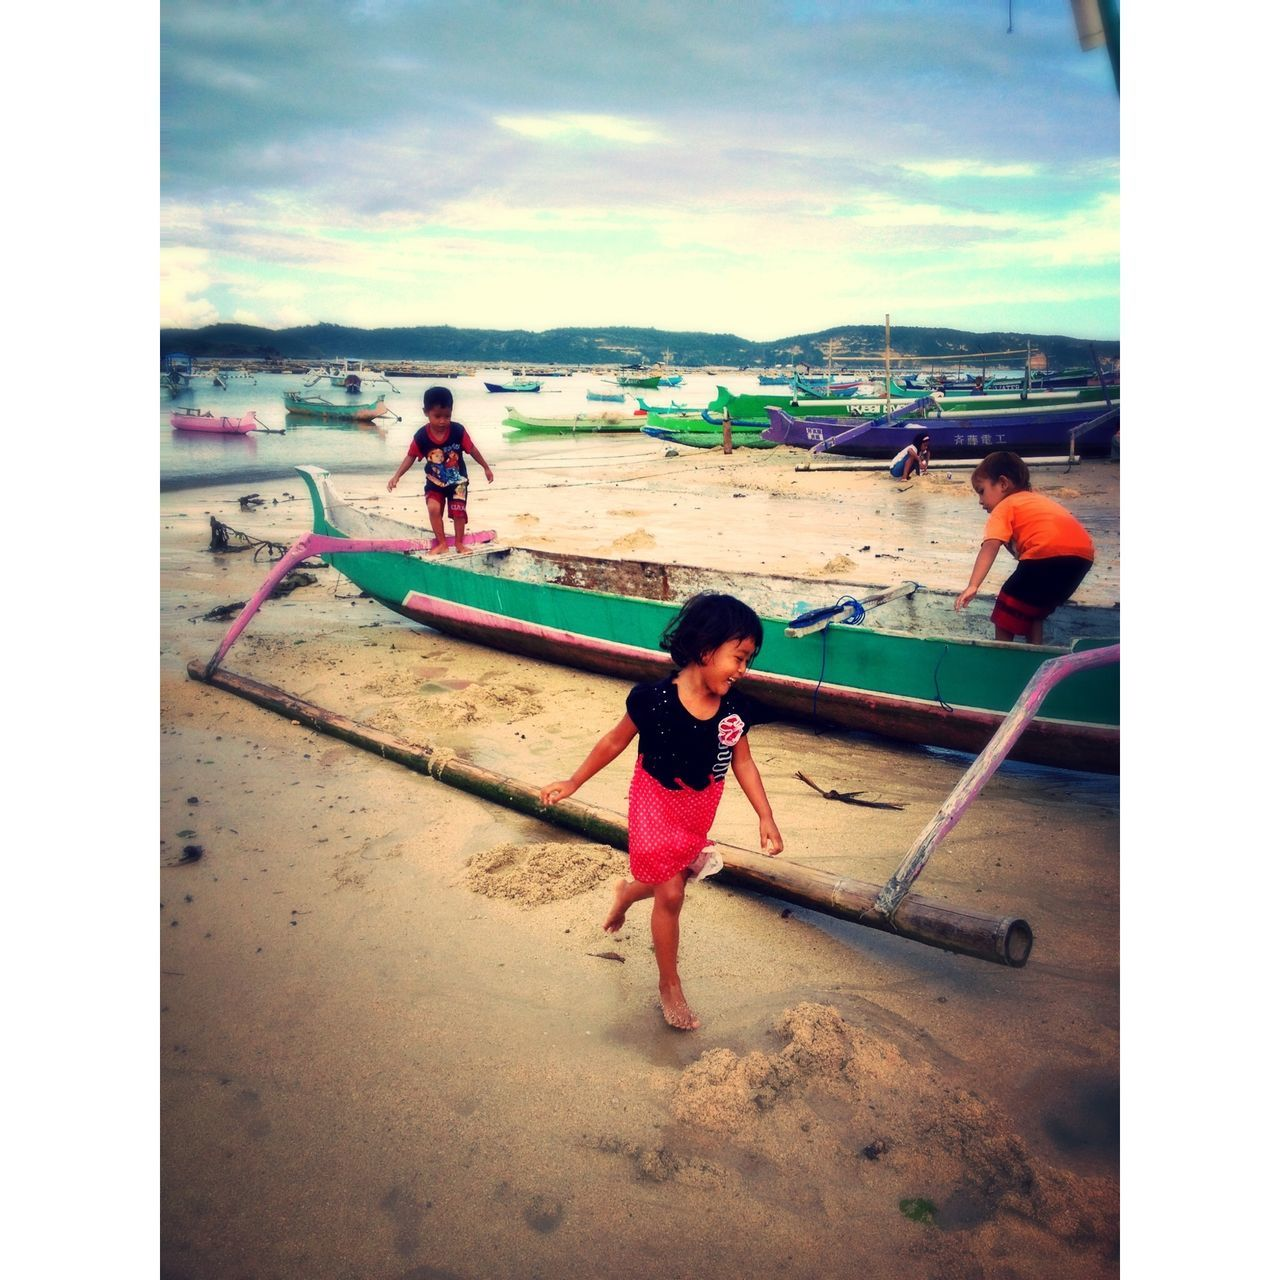 Kids Being Kids INDONESIA EyemIndonesia Lombok Gerupukbeach